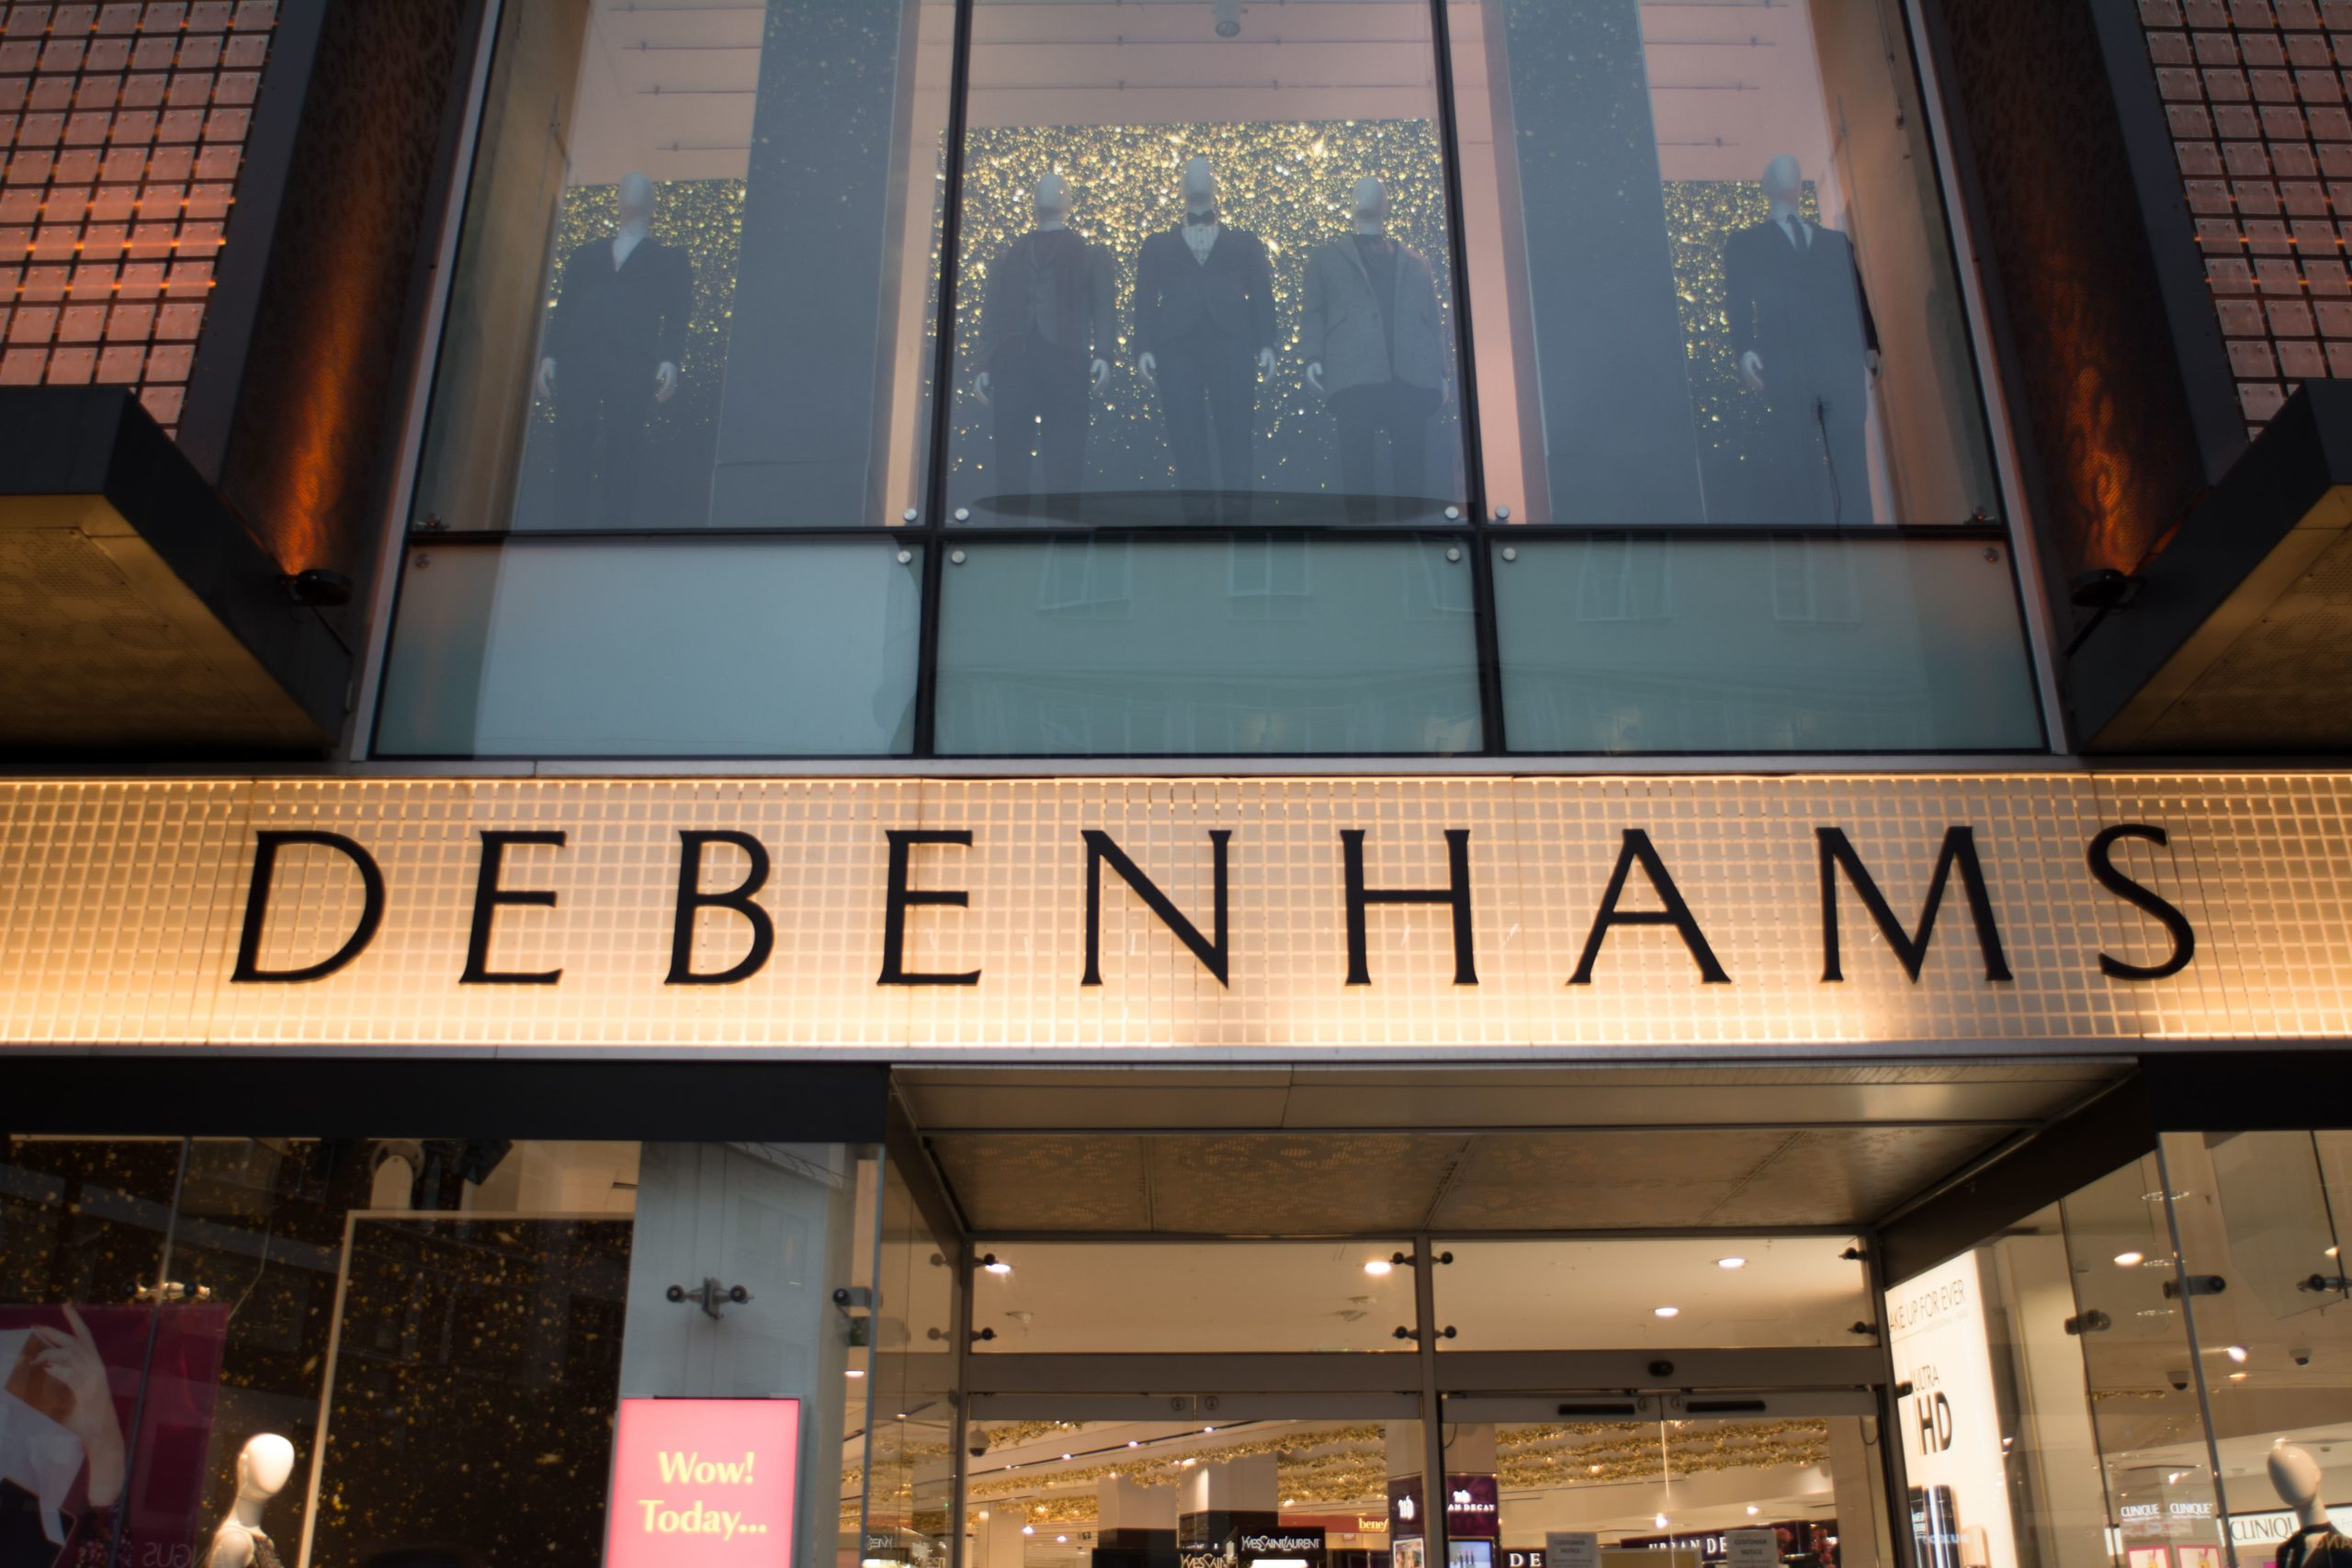 debenhams e-commerce